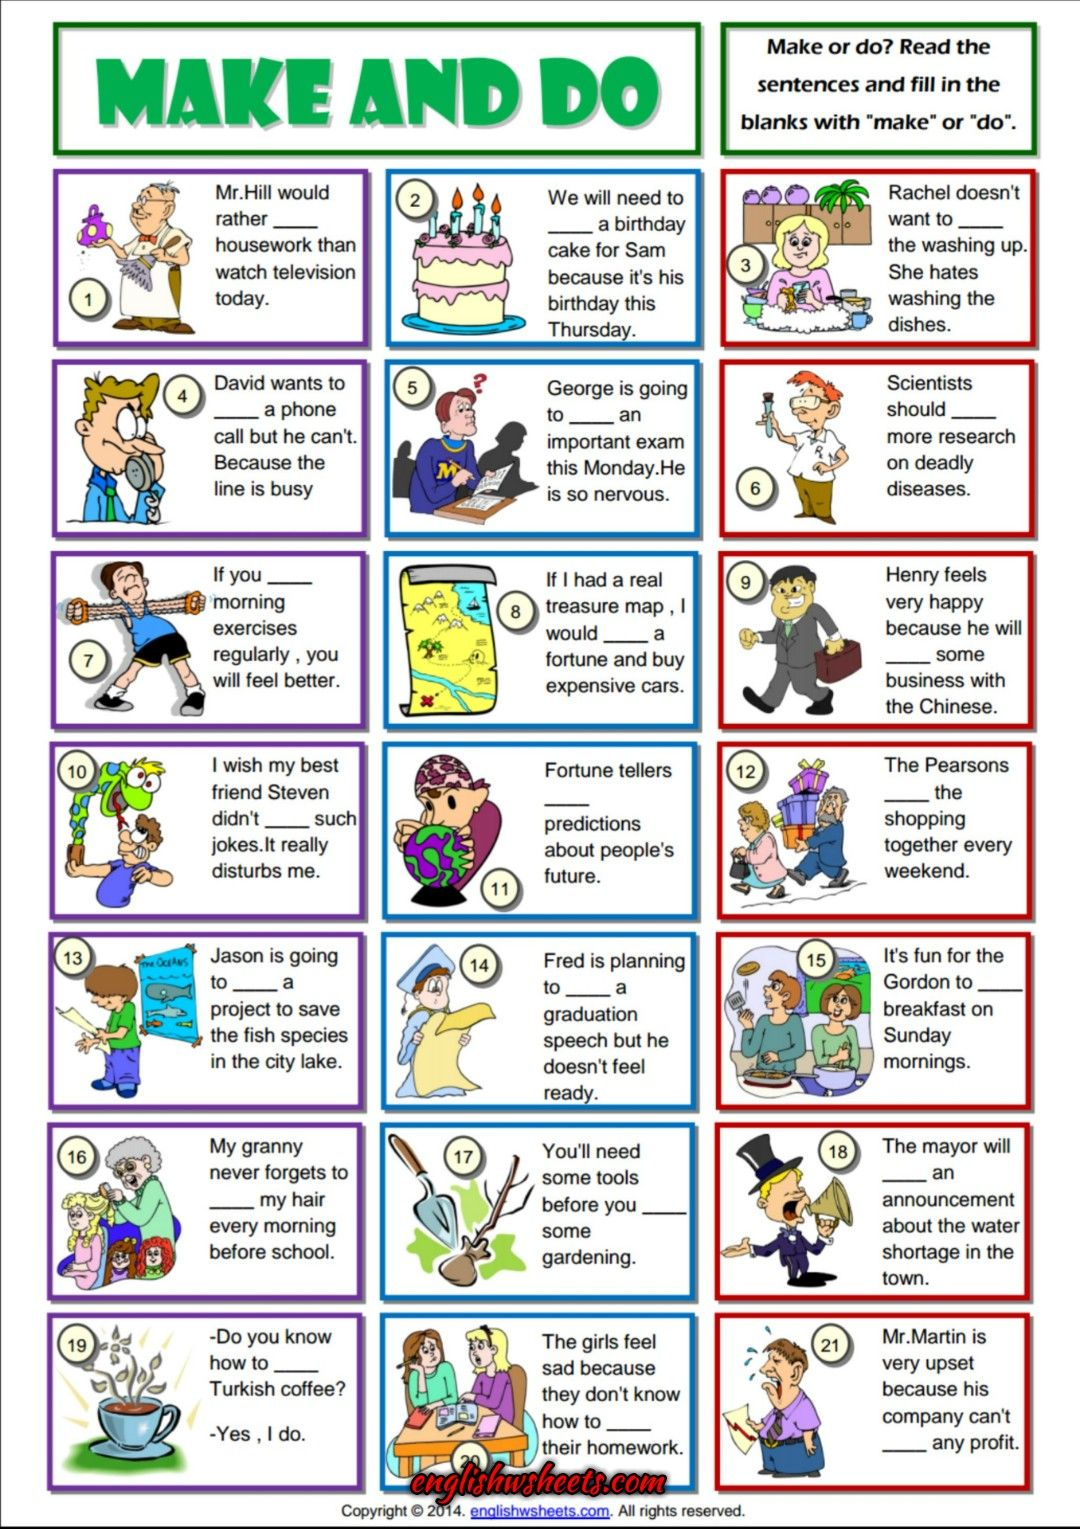 Make And Do Collocation Esl Grammar Exercise Worksheet